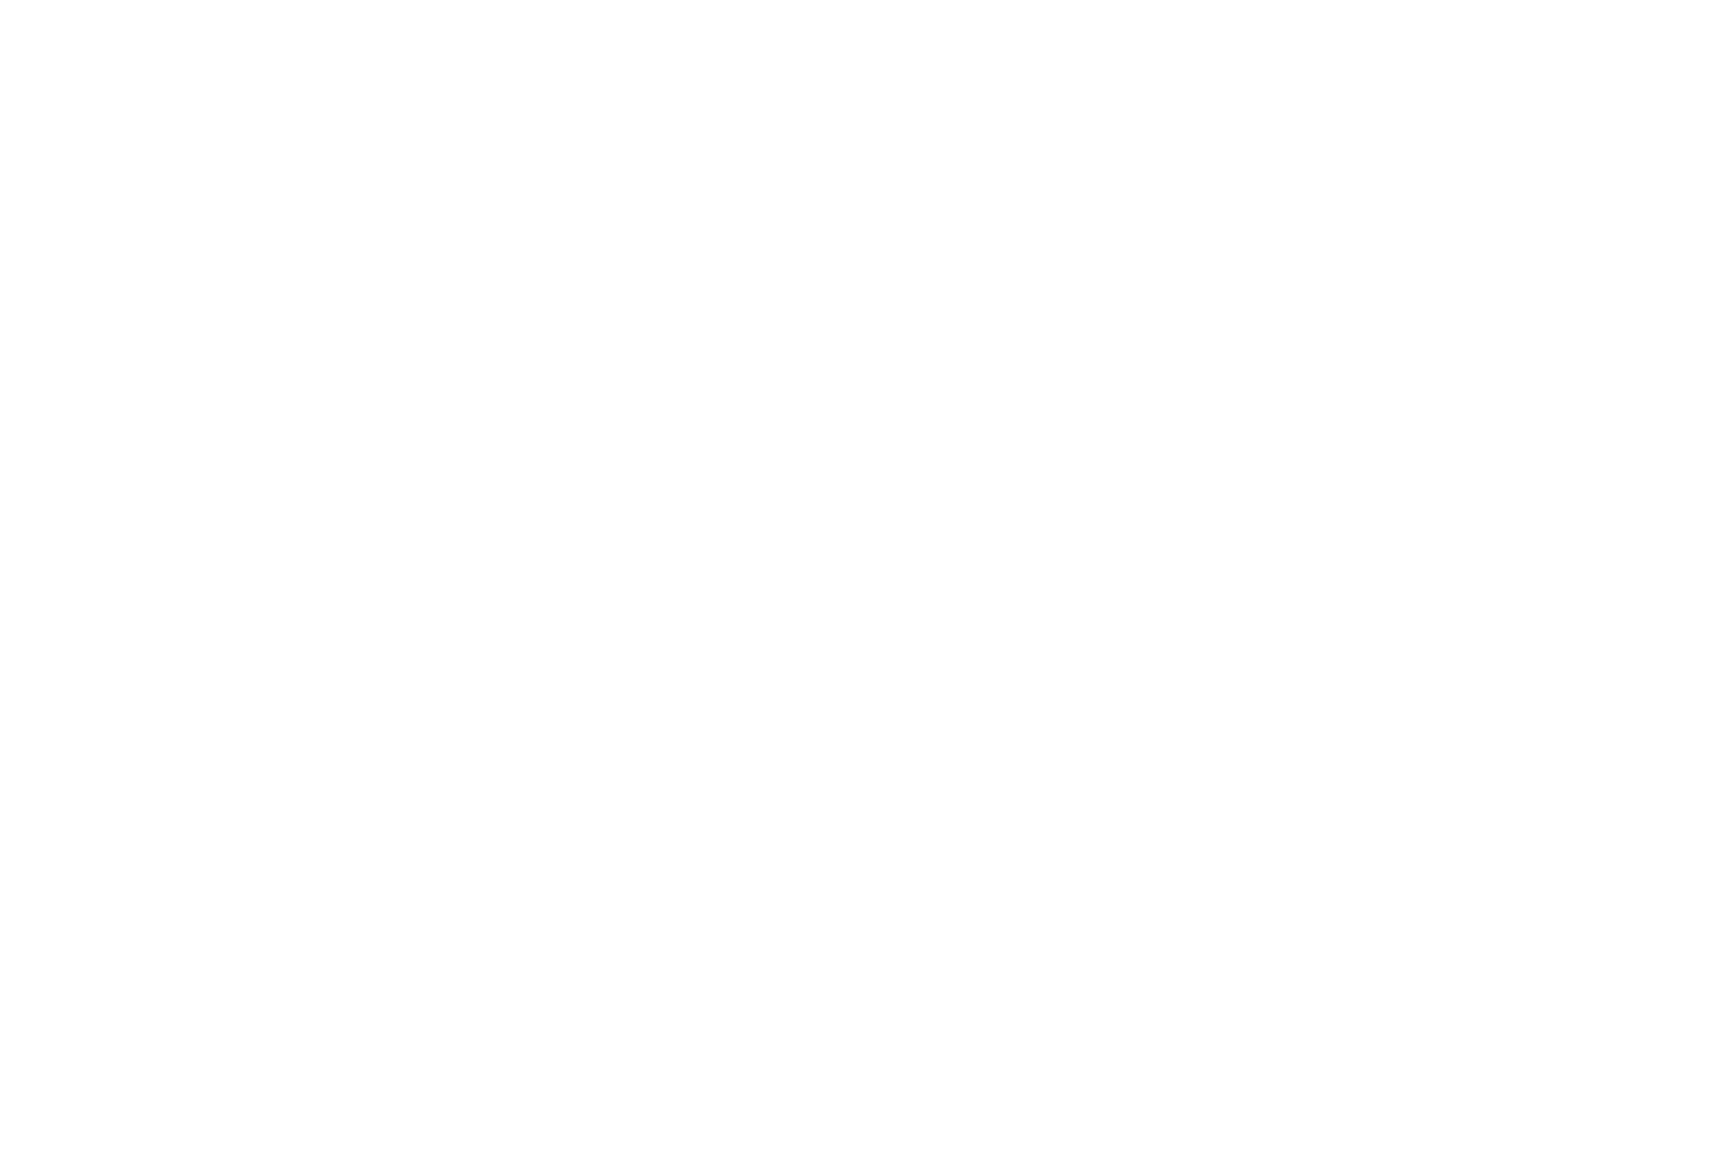 OFFICIAL SELECTION - Marcellus Mini Movie Family Film Festival - 2016.png